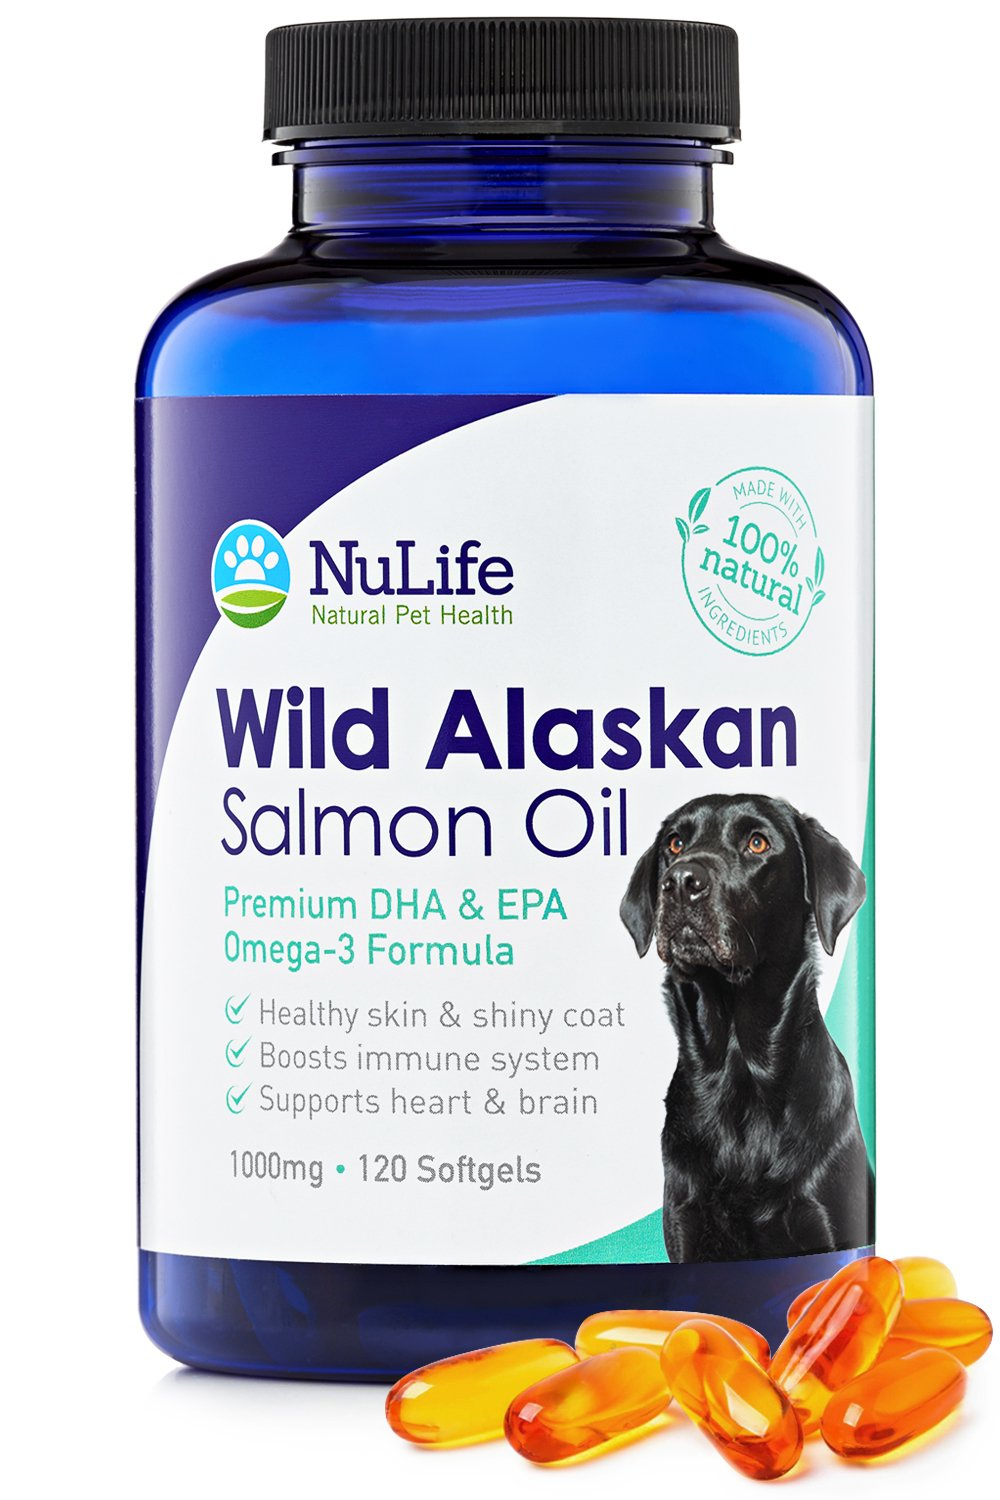 NuLife Natural Pet Health Pure Wild Alaskan Salmon Oil for Dogs, Omega 3 Fish Oil Supplement for Healthy Skin & Shiny Coat, Prevents Itchy Skin, Skin Allergies & Shedding, 120 Soft Capsules by NuLife Natural Pet Health